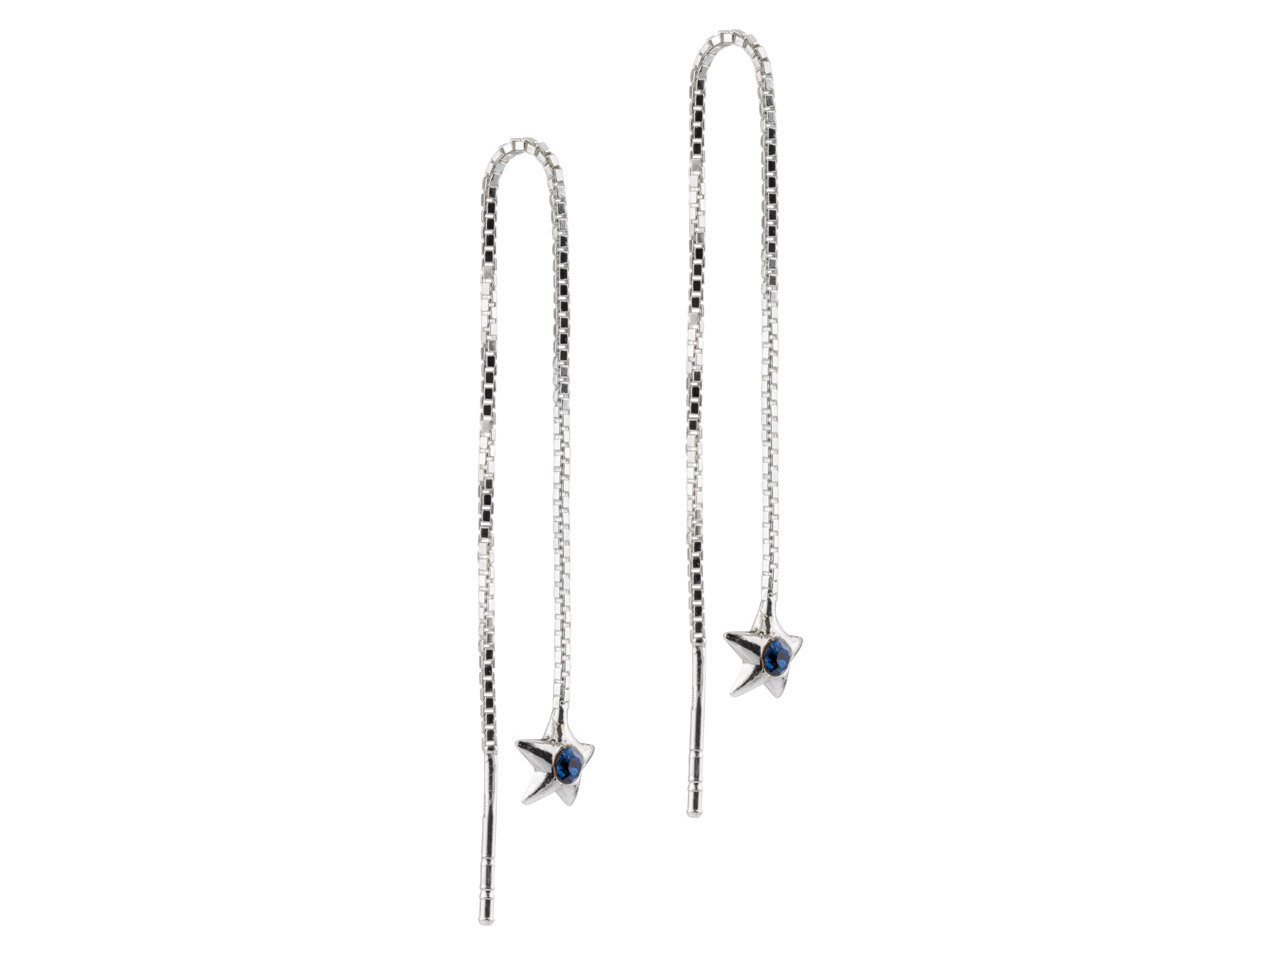 Sterling Silver Threadable Earrings With Blue Crystal Set Star